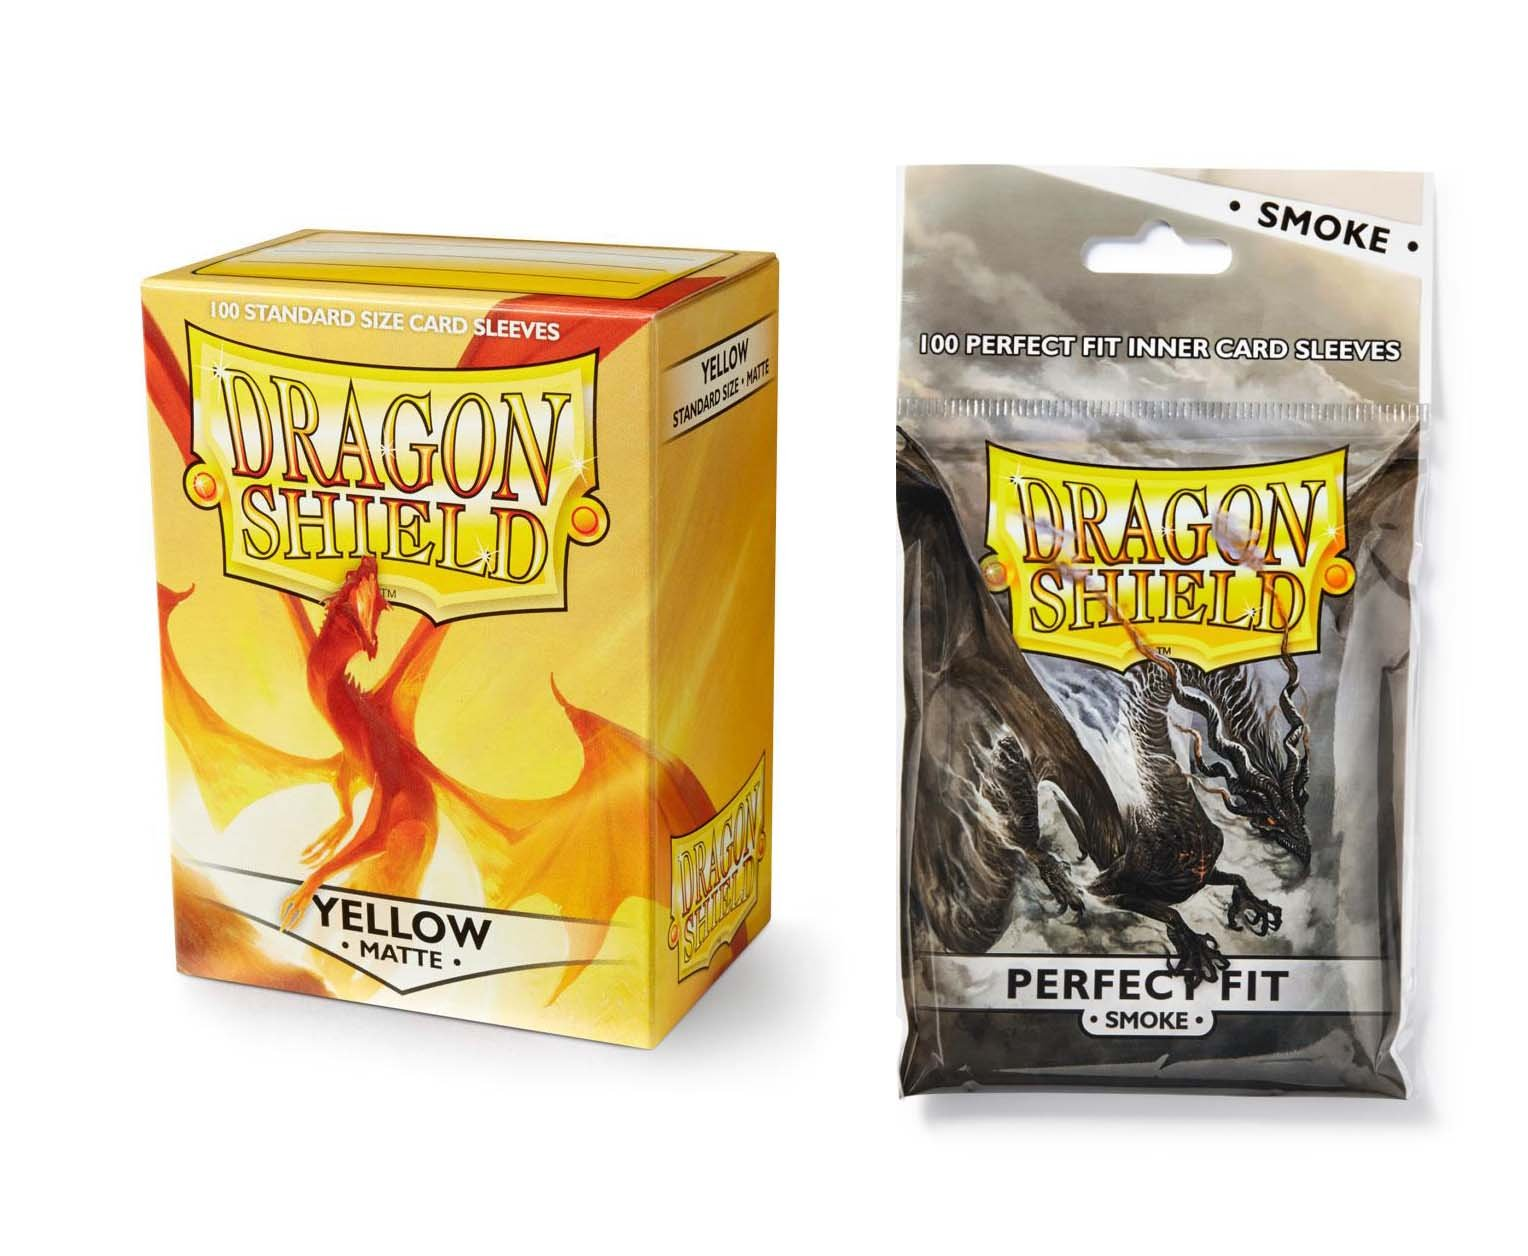 Dragon Shield Bundle: Matte Yellow 100 Count Standard Size Deck Protector Sleeves + 100 Count Smoke Perfect Fit Inner Card Sleeves